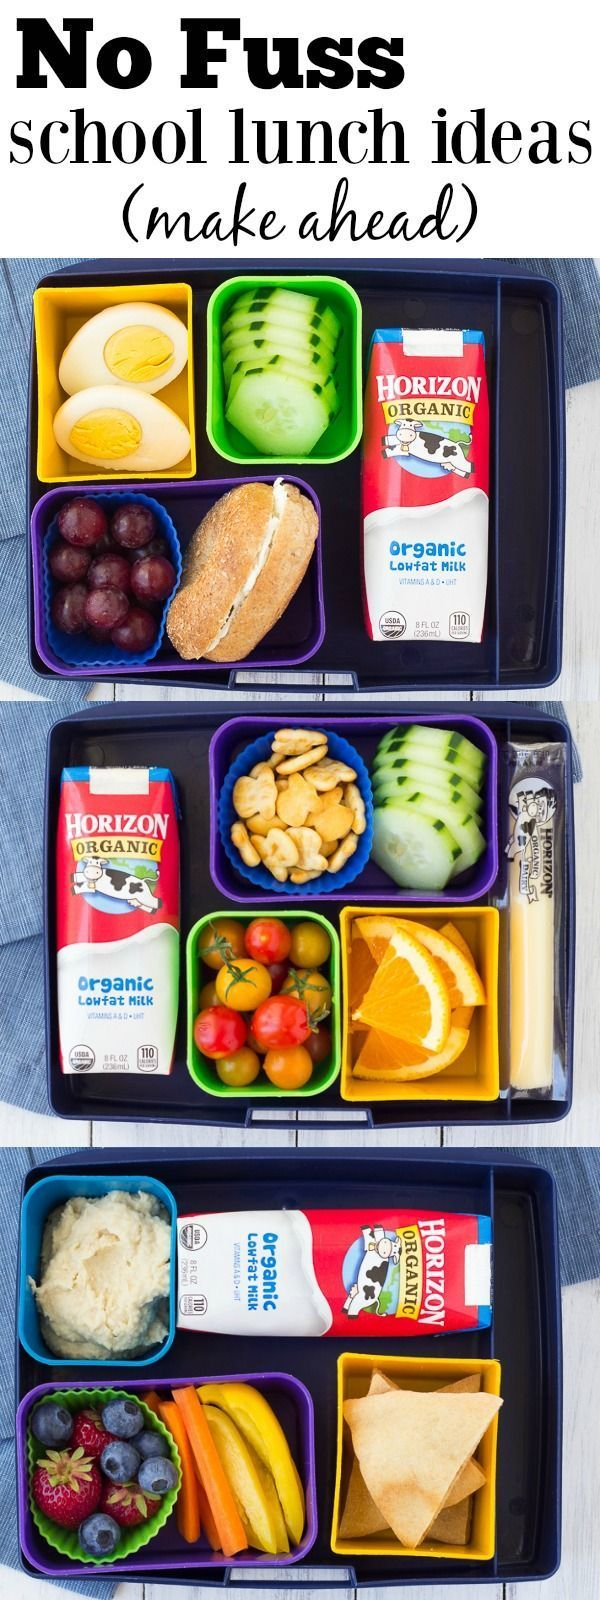 Fast and healthy school lunch ideas and tips! These make